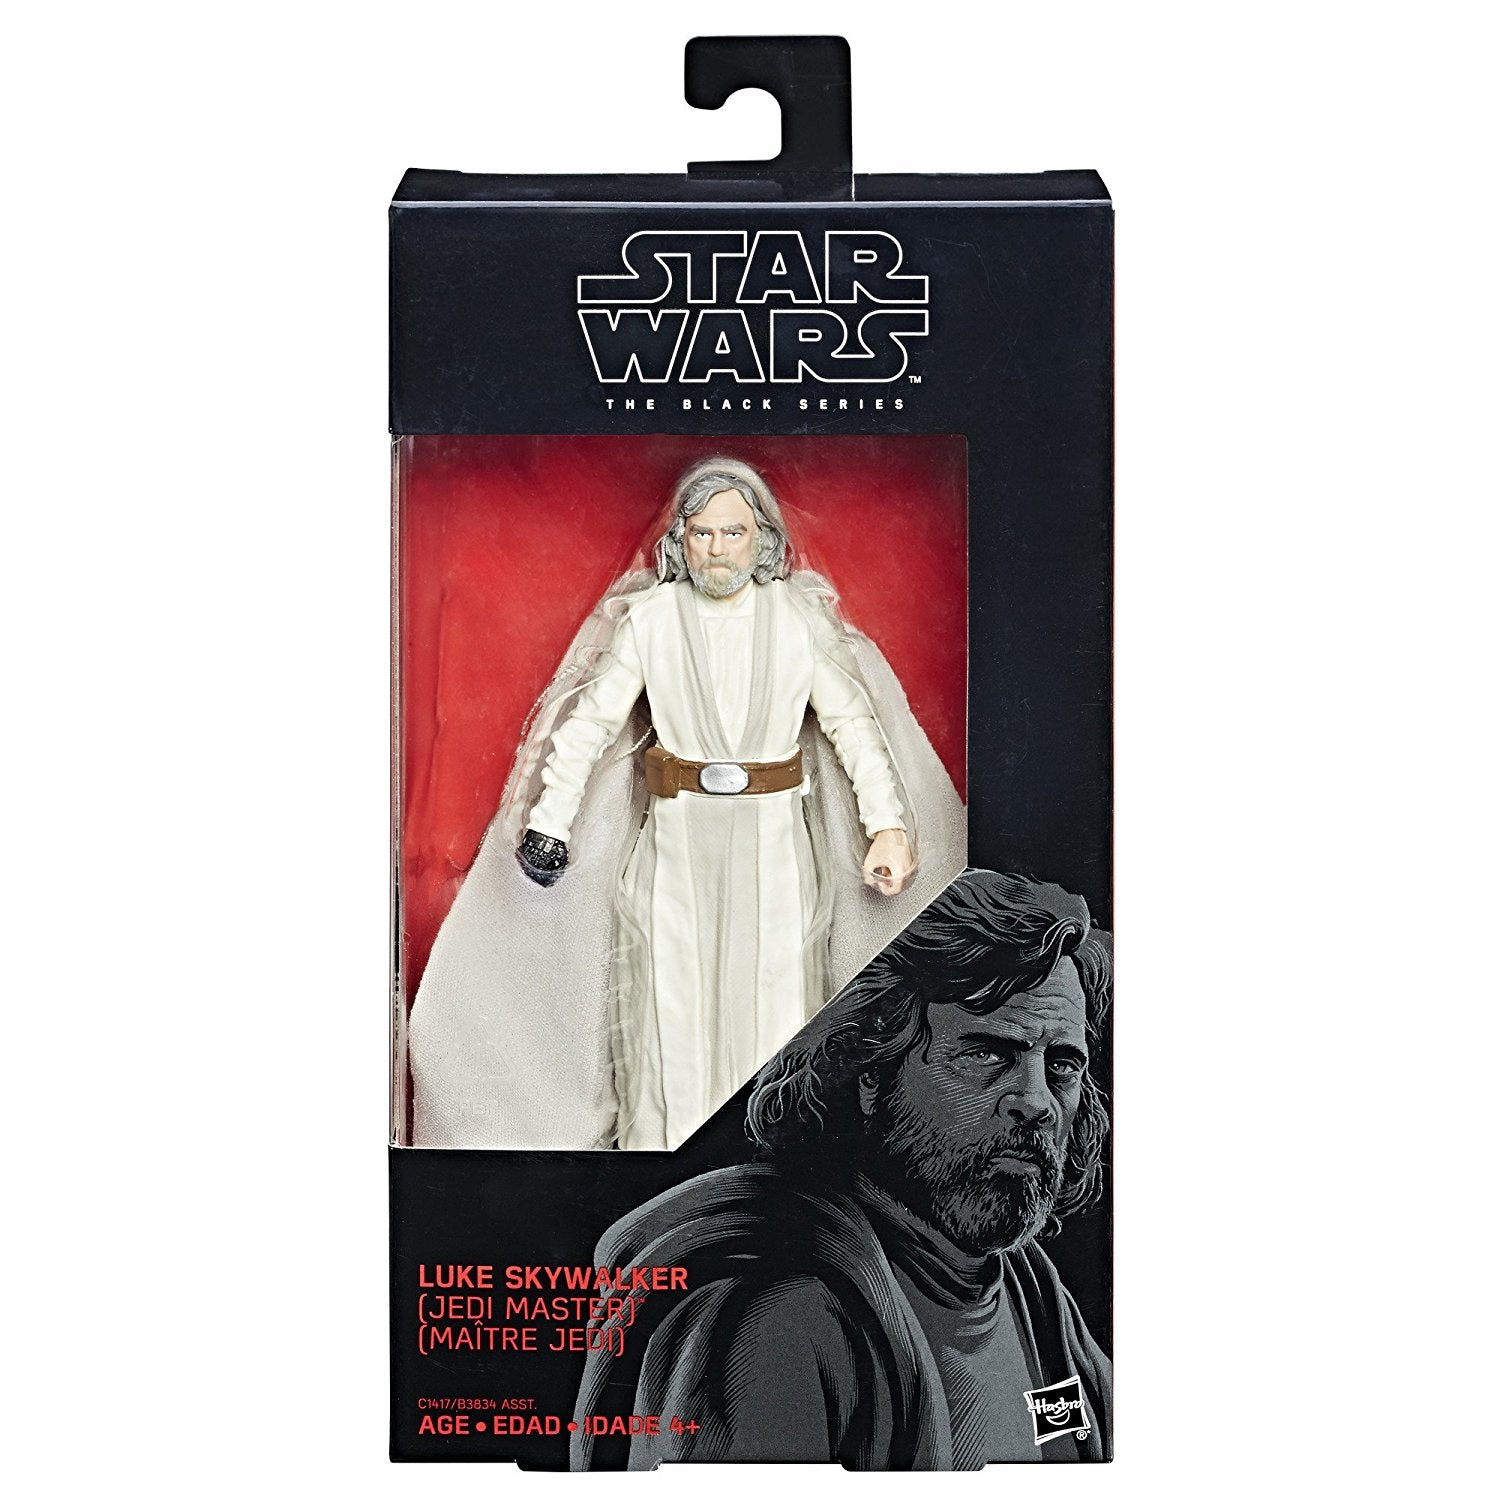 Star Wars The Black Series Episode 8 Luke Skywalker (Jedi Master) Action Figure